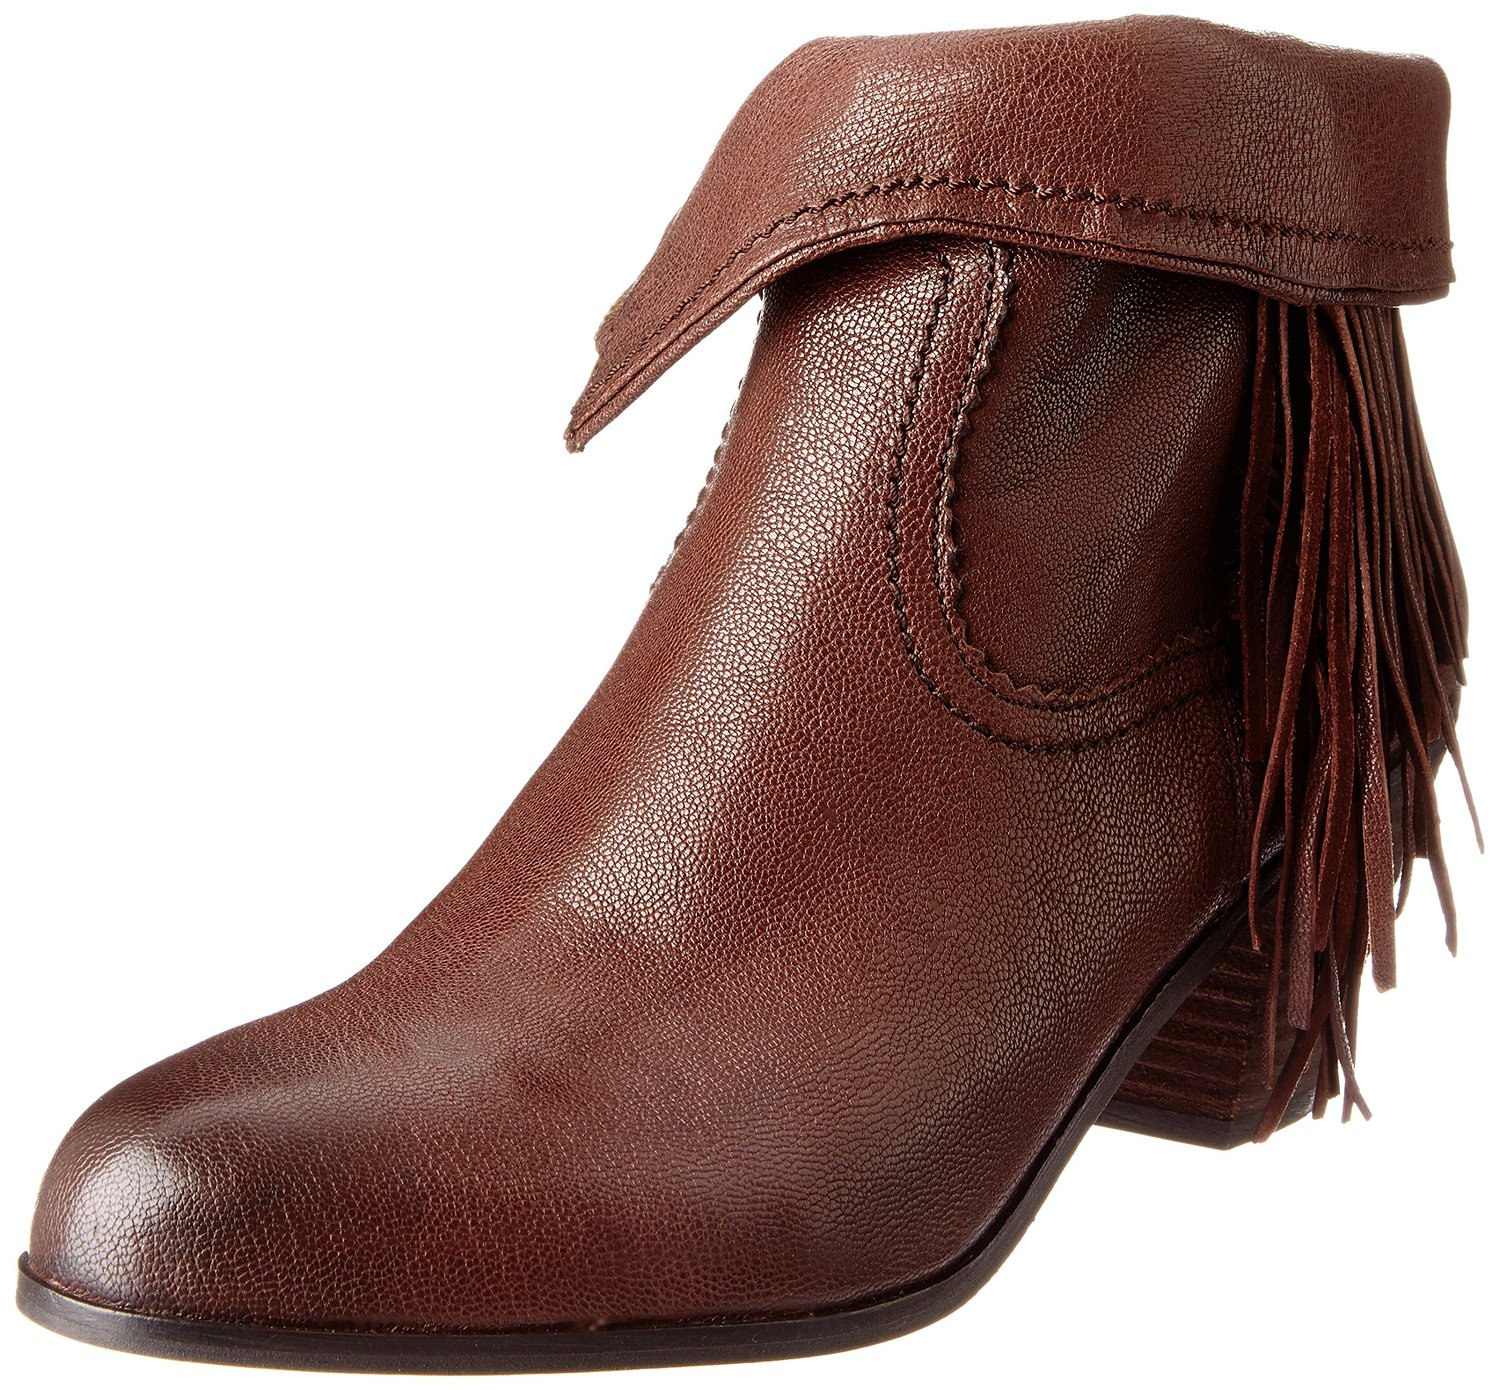 b6141f77208a Sam Edelman Louie Ankle Fringe Boot Brown Leather